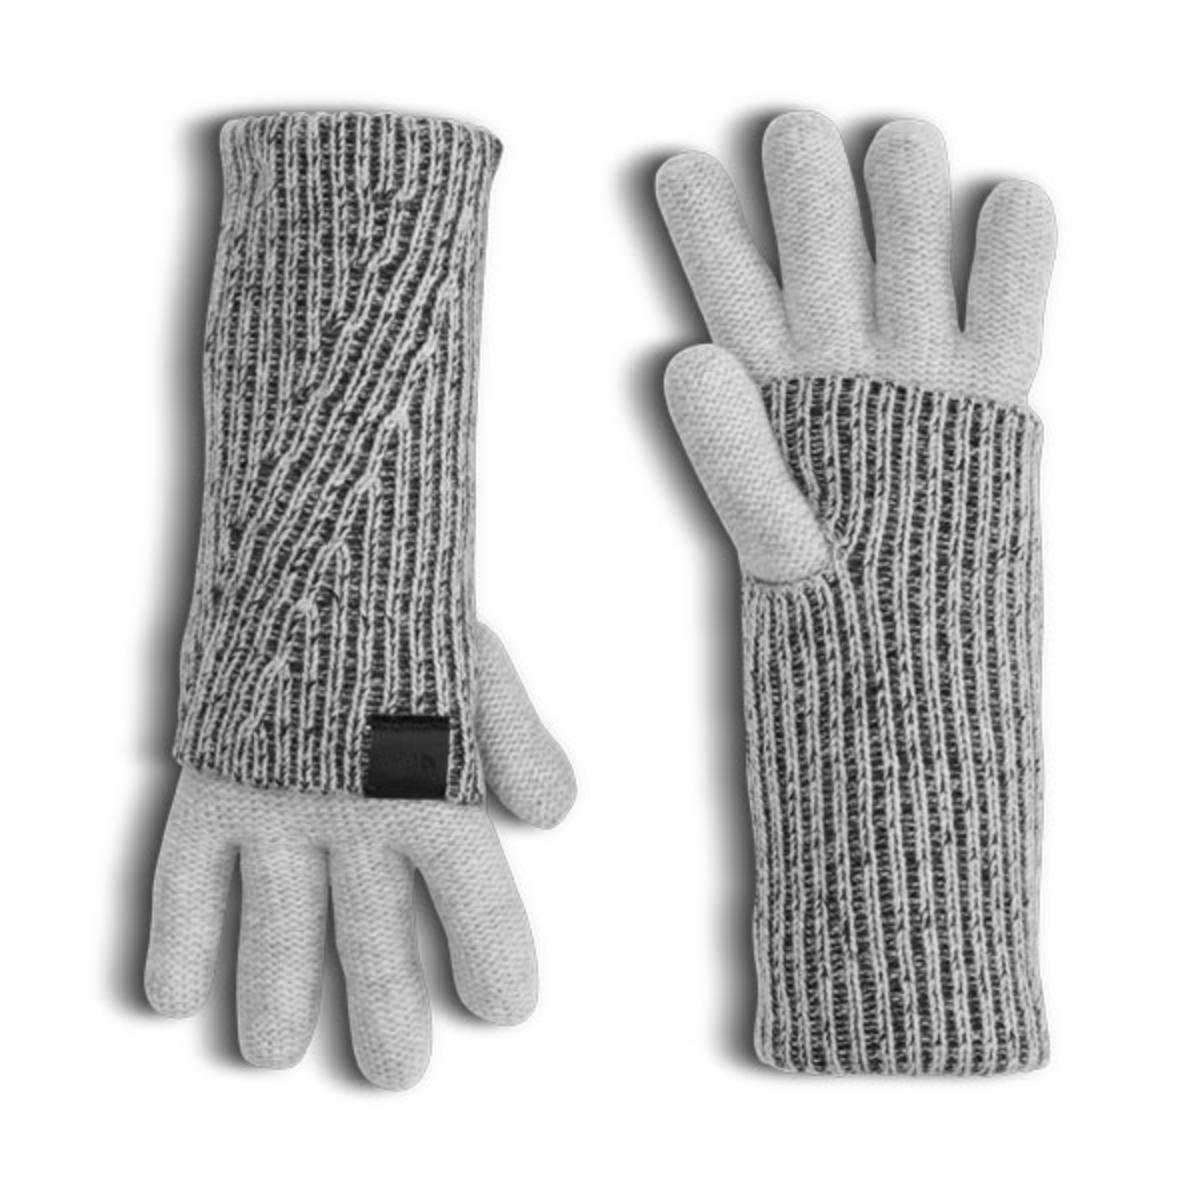 The Cryos Cashmere Fold-Over Glove is knitted with sumptuously soft cashmere with a ribbed cuff. This glove features convenient thumbholes so it can be worn rolled up for maximum warmth from the elements. FEATURES:  100% cashmere wool Technical cashmere for warmth Long cuff can be folded over for additional warmth Drop color; JBV - TNF Medium Grey Heather Std (11/15/2016) Colors: Light Grey Heather & Black Heather(STD) Sizes: S/M, L/XL